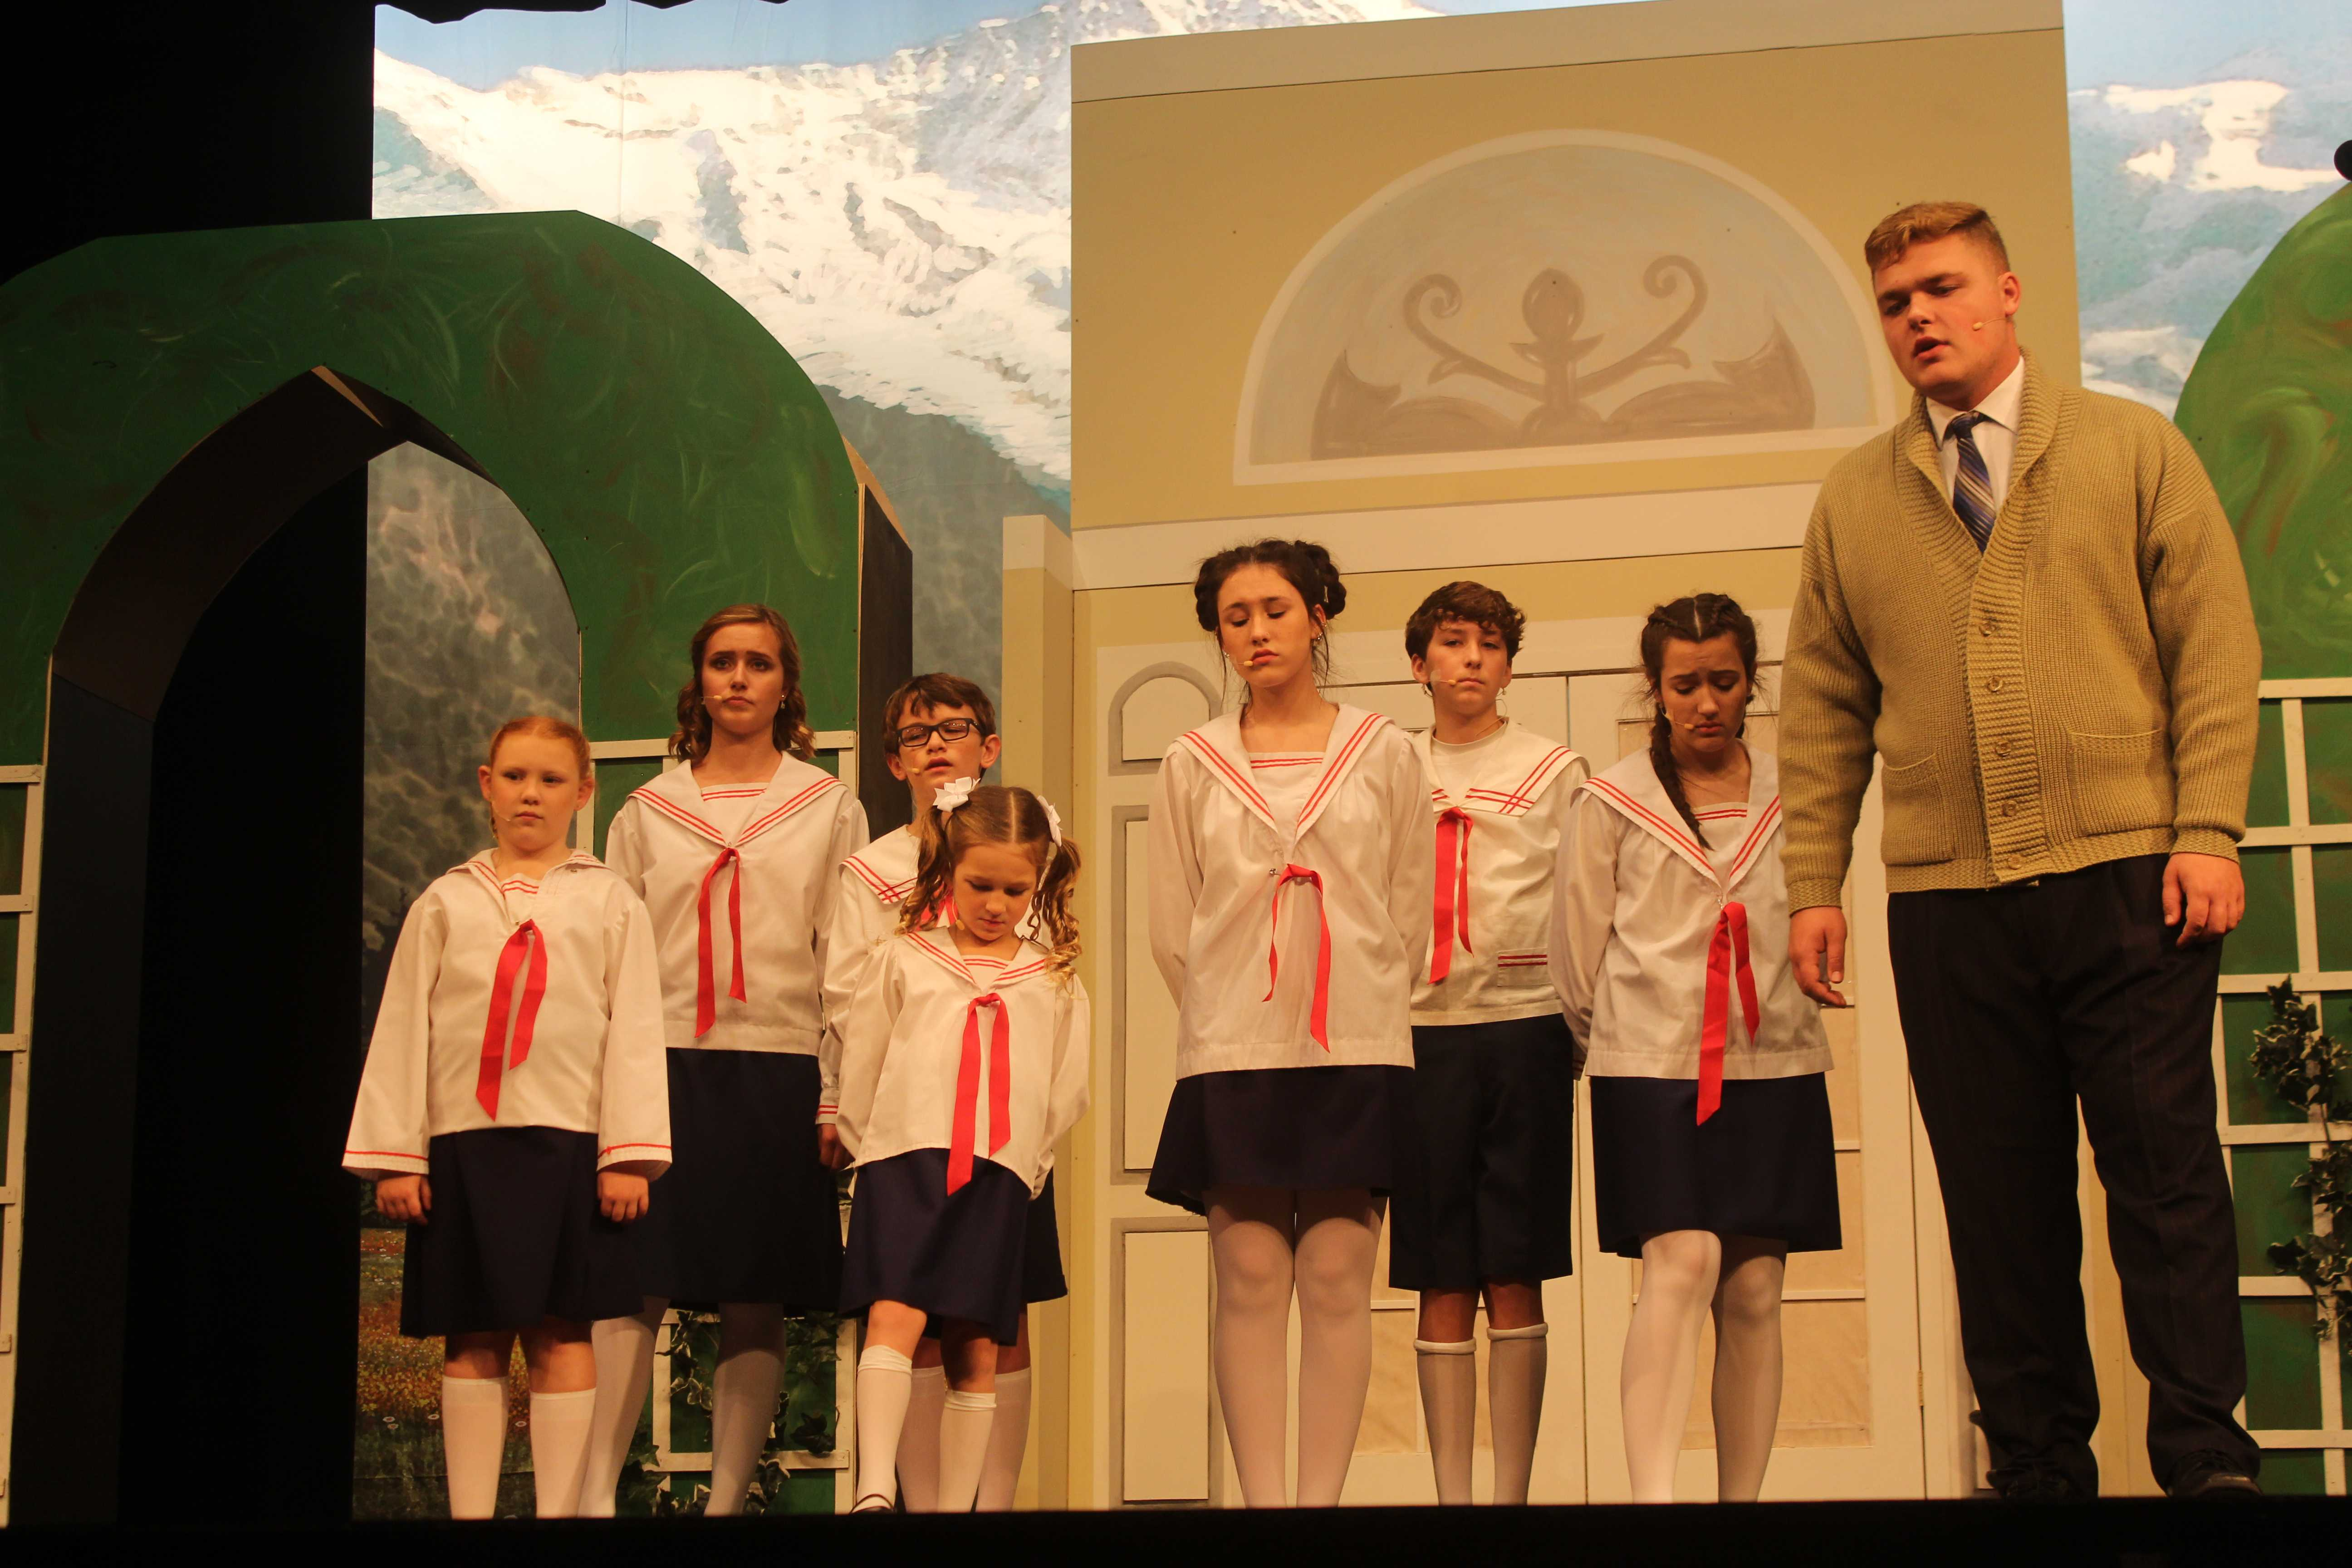 The Sound of Music Review